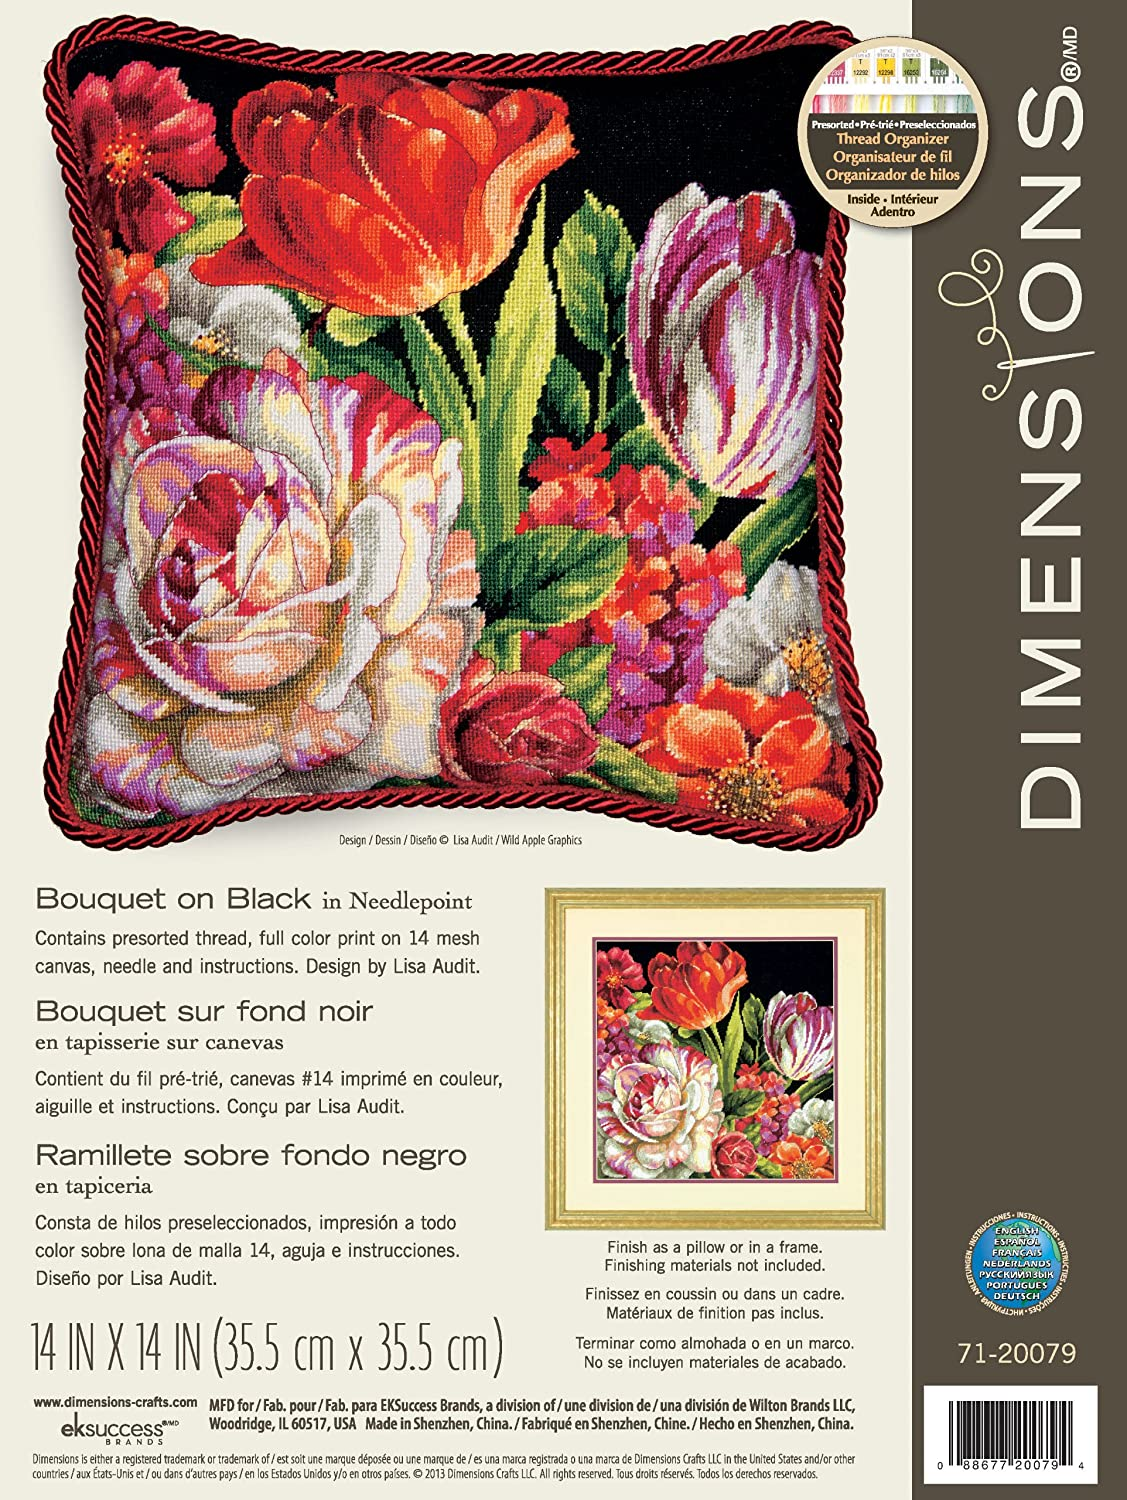 Wilton Dimensions Crafts Needlepoint Kit, Bouquet on Black 71-20079